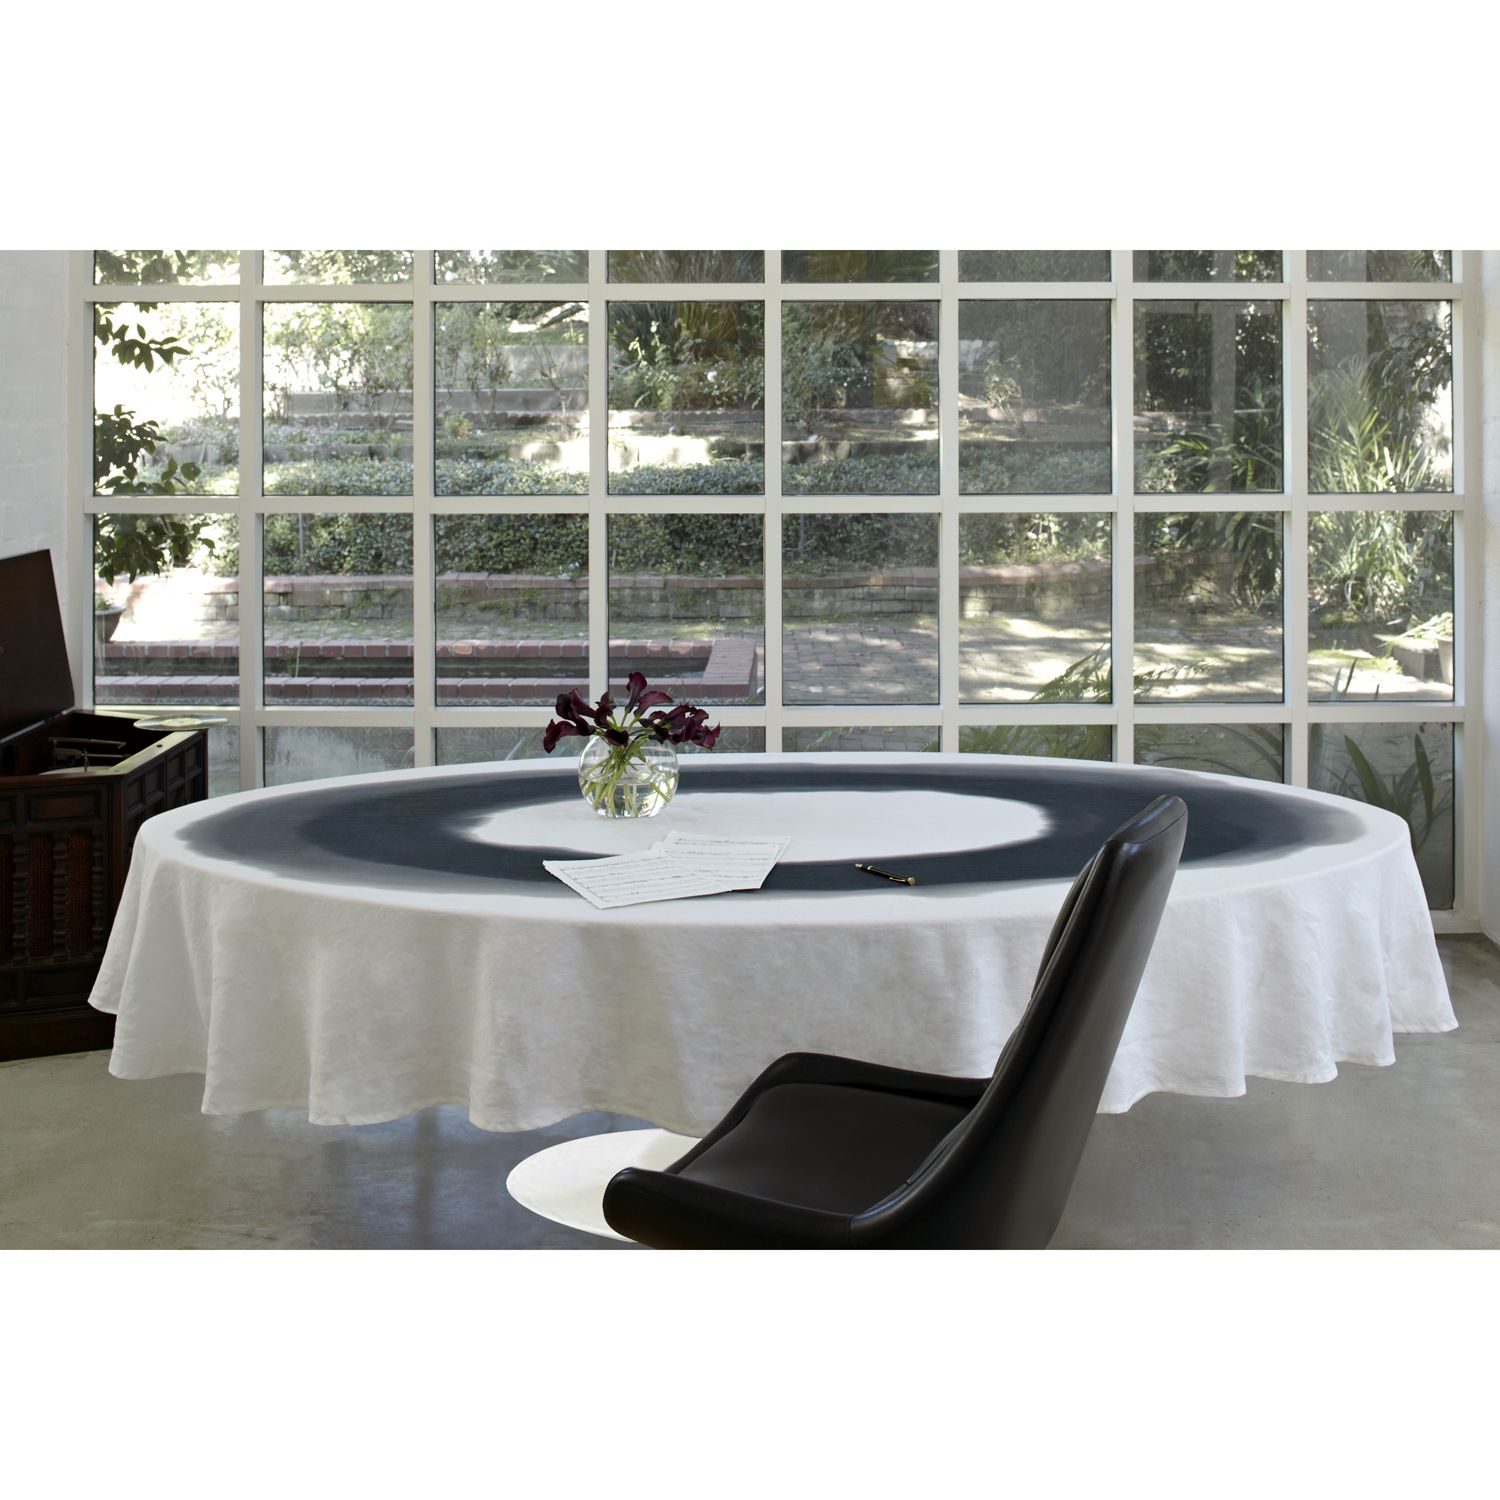 Huddleson Linens Black and White Oval Moreton Tablecloth on a